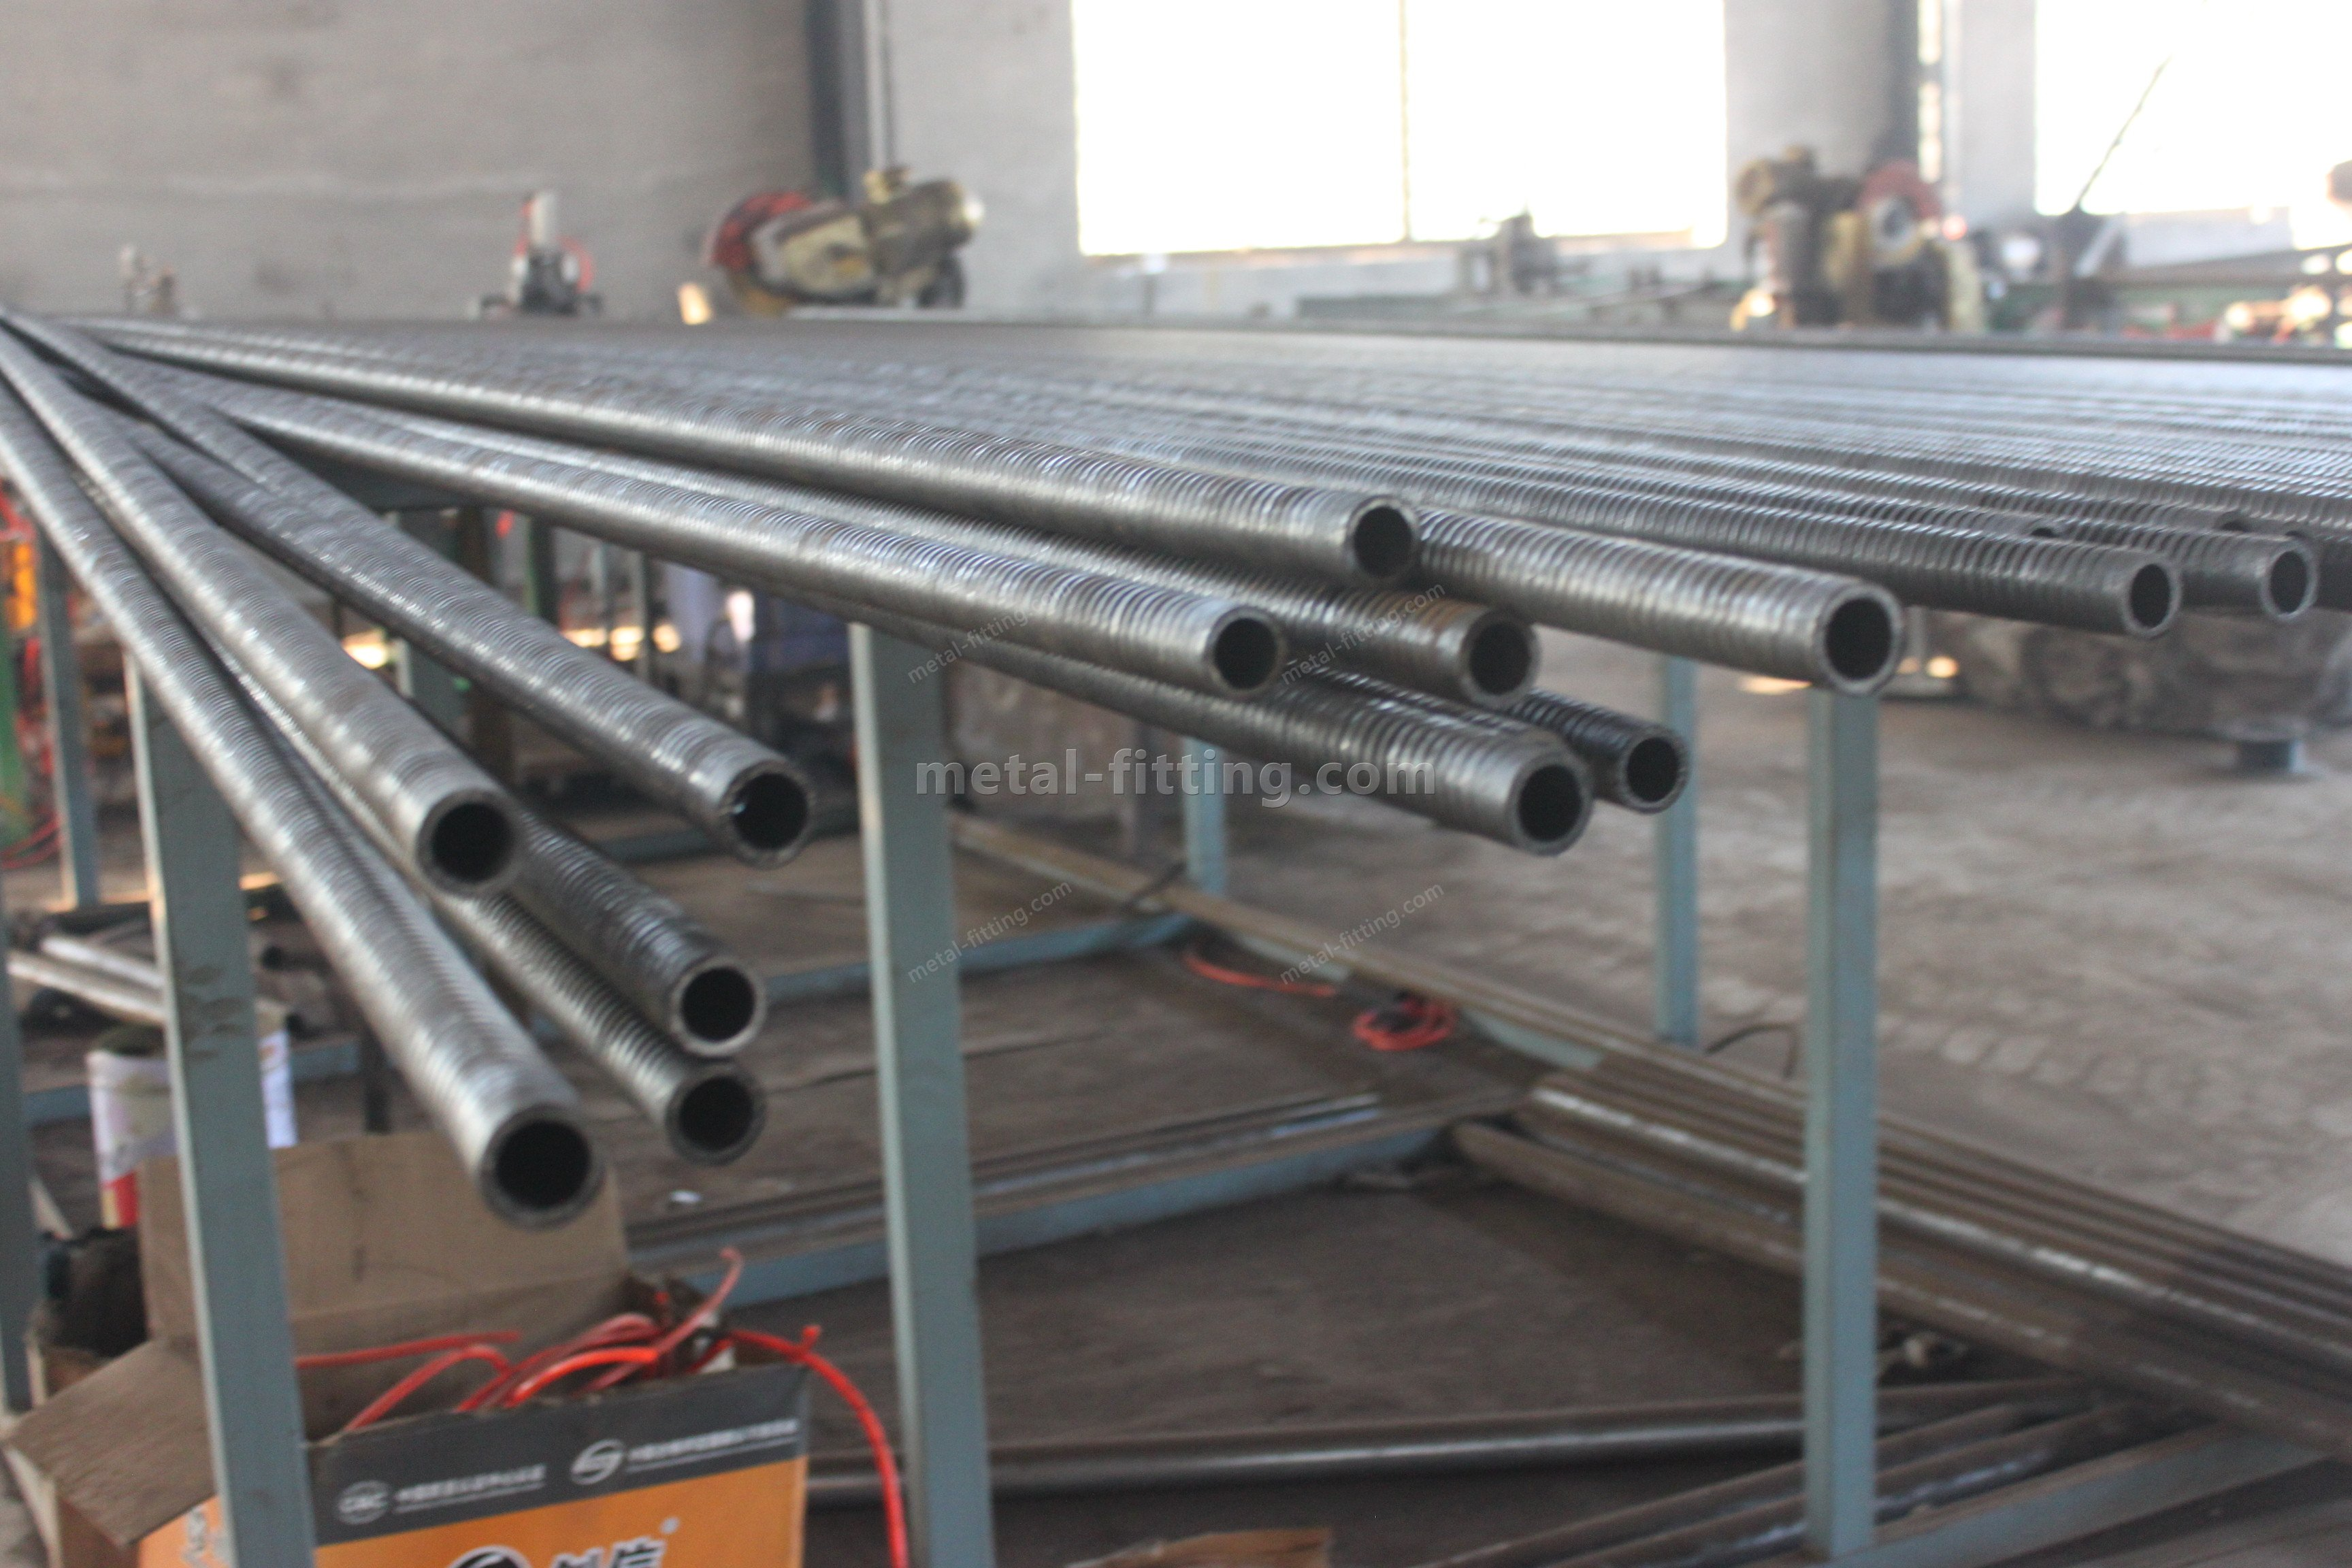 cast iron or steel tube of the scaffolding-scaffolding tube